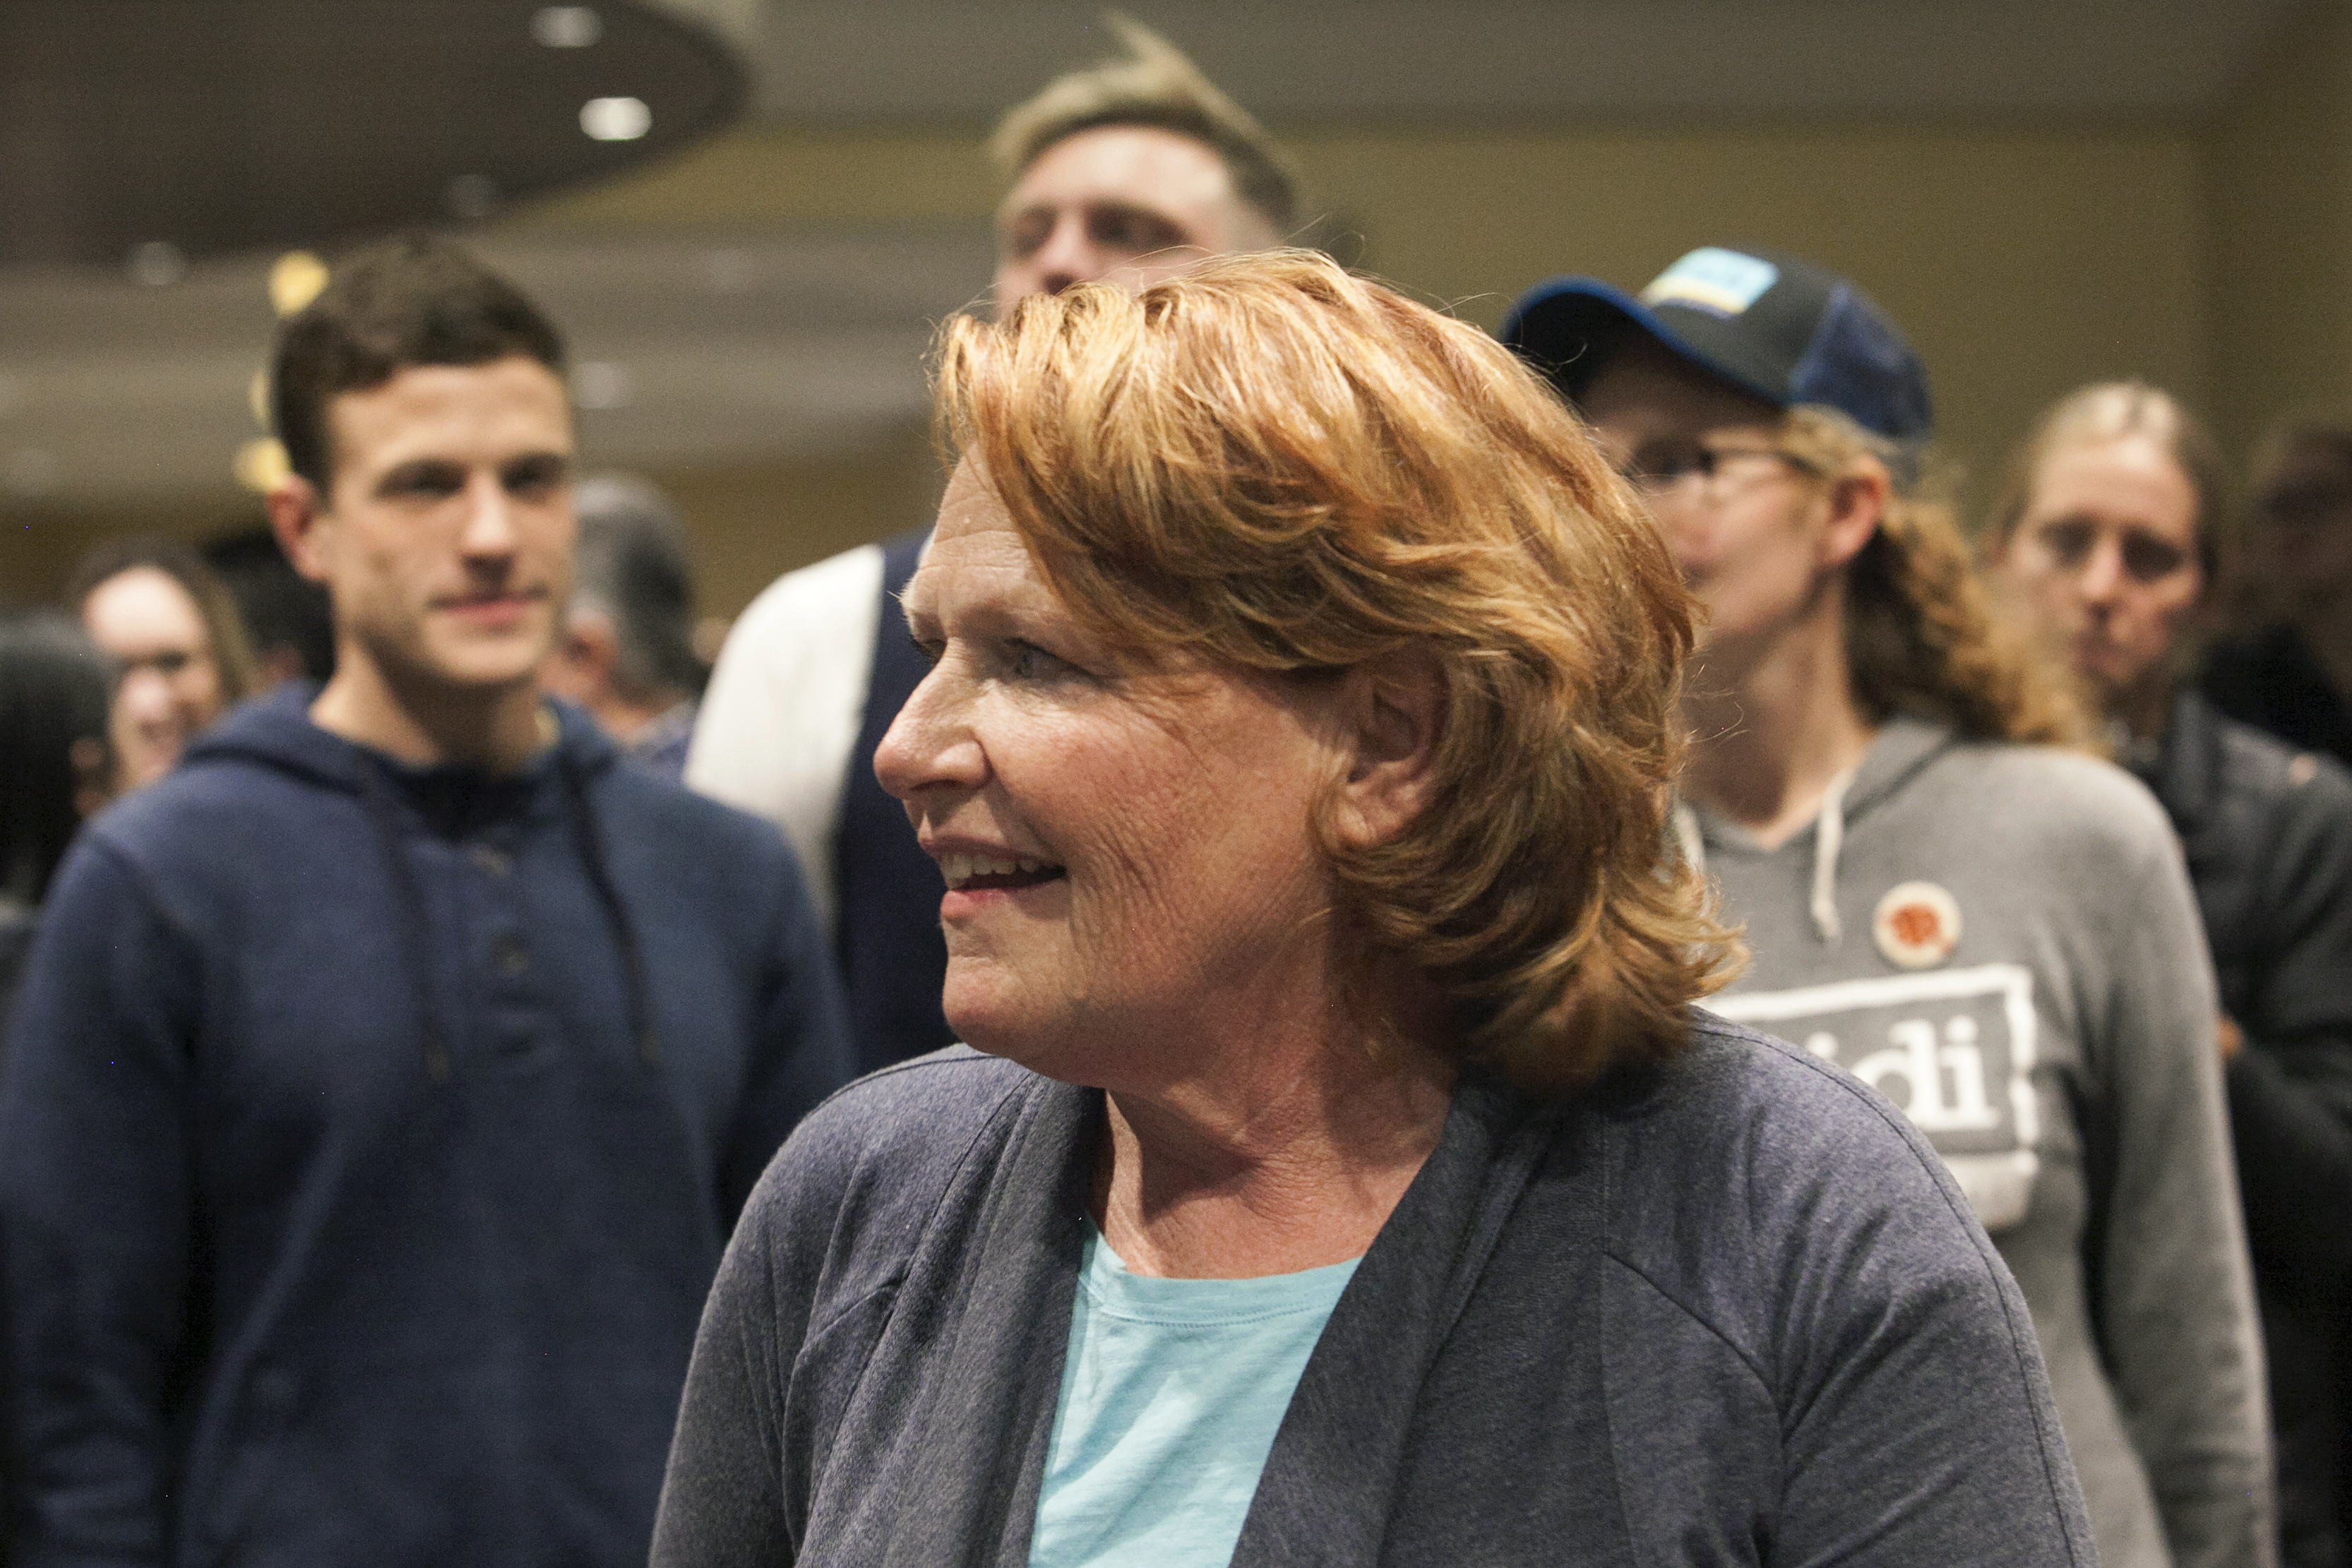 Well-wishers surround Sen. Heidi Heitkamp, D-N.D., after she addressed supporters at an election night watch party on Tuesday, Nov. 6, 2018, in West Fargo, N.D. Republican Rep. Kevin Cramer defeated Heitkamp. (AP Photo/Ann Arbor Miller)